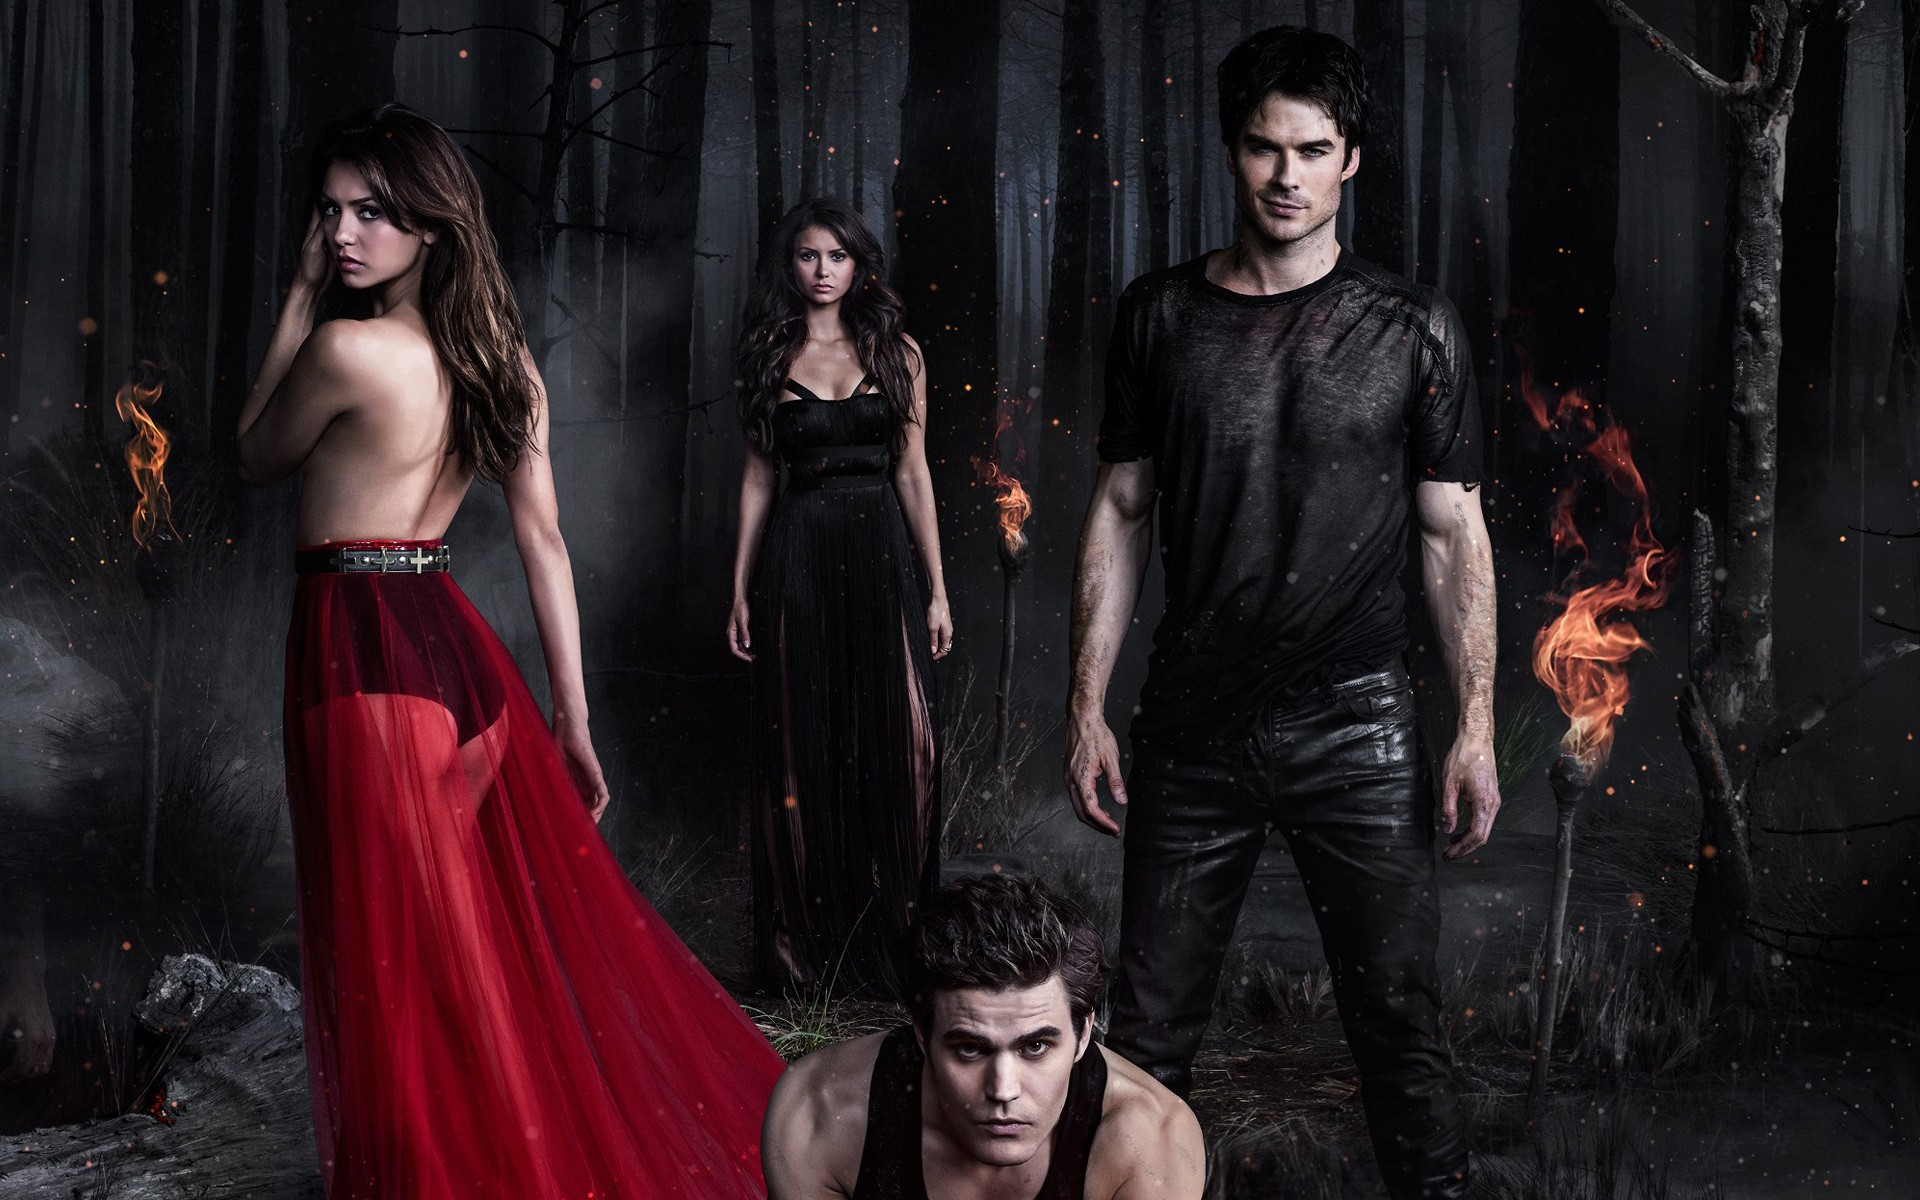 78 The Vampire Diaries HD Wallpapers | Backgrounds - Wallpaper Abyss